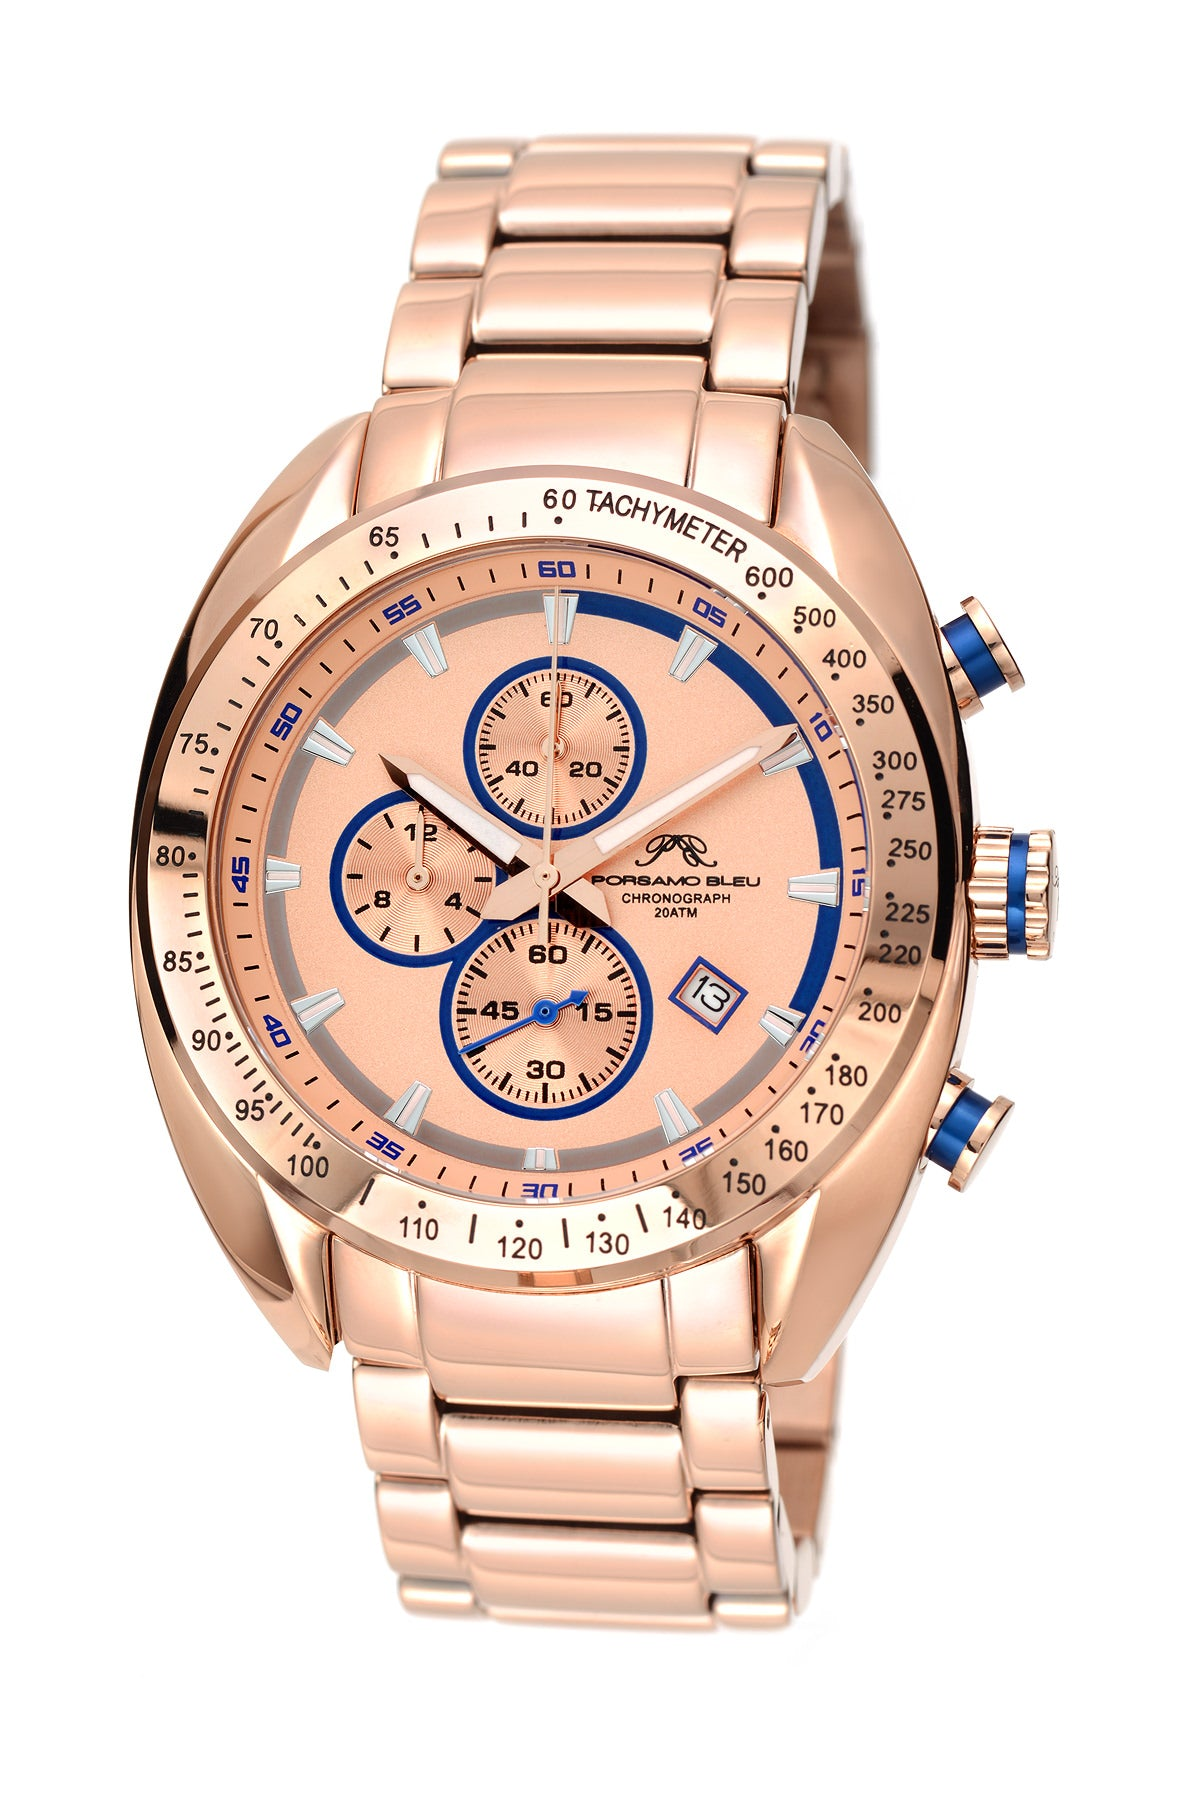 Porsamo Bleu Julien luxury  chronograph men's stainless steel watch, rose, blue 273BJUS